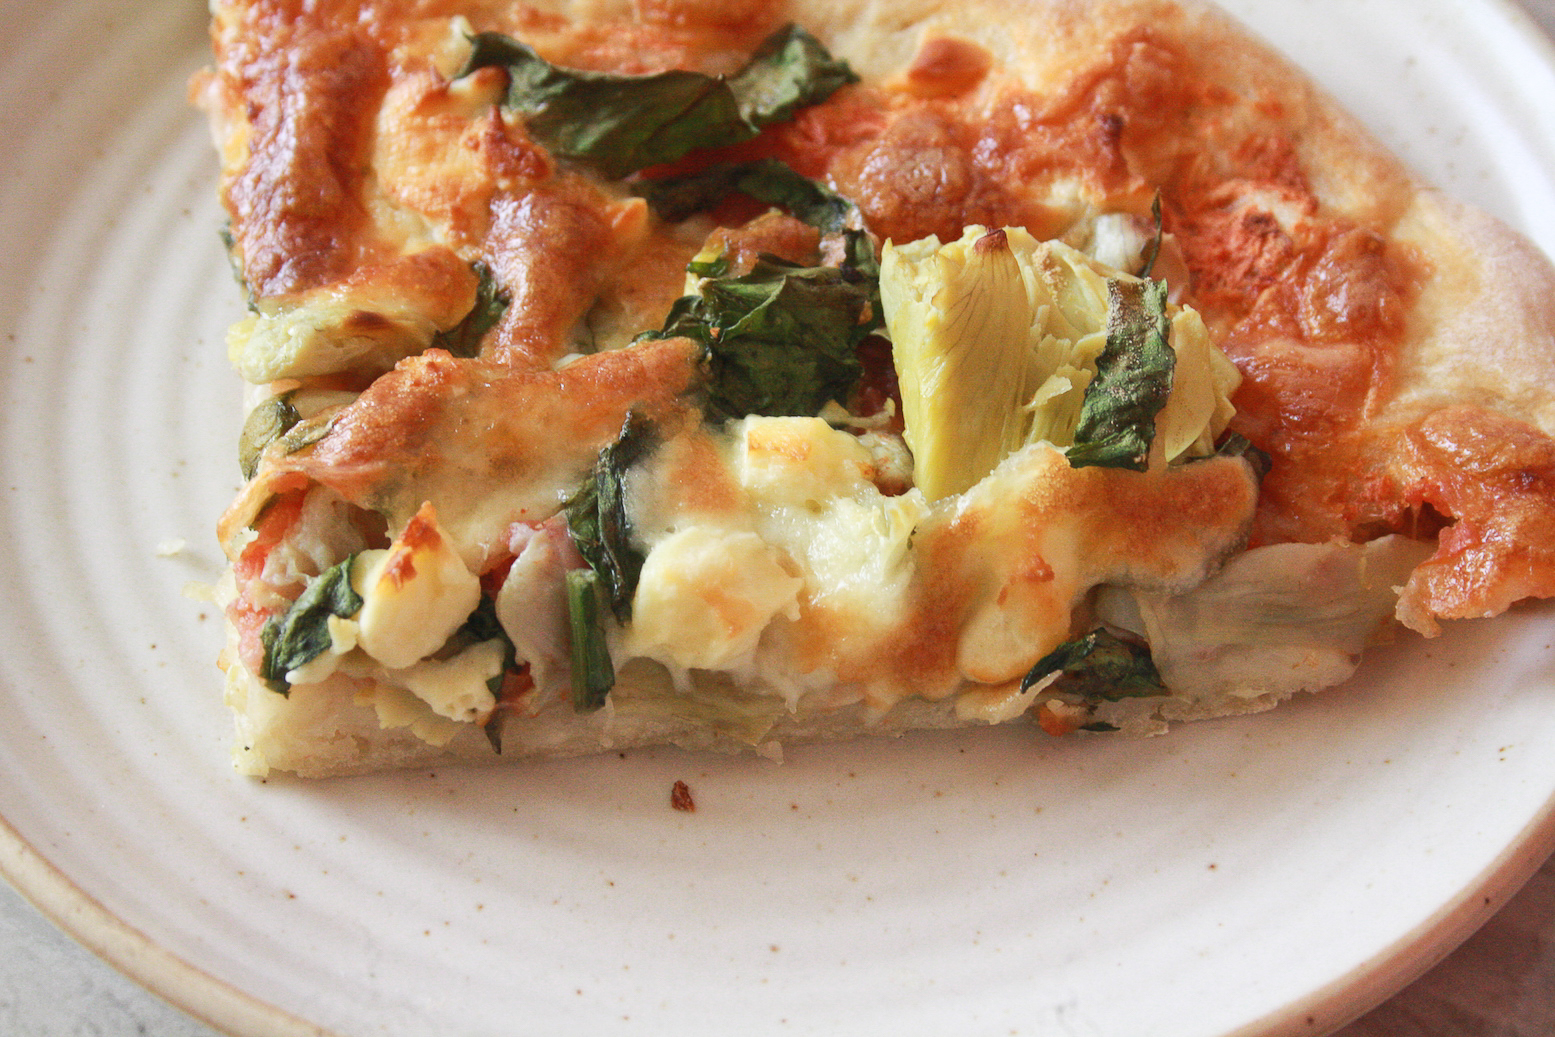 A chewy, deeply flavoured pizza crust topped with a simple tomato sauce, spinach and artichokes, plus lots of cheese!